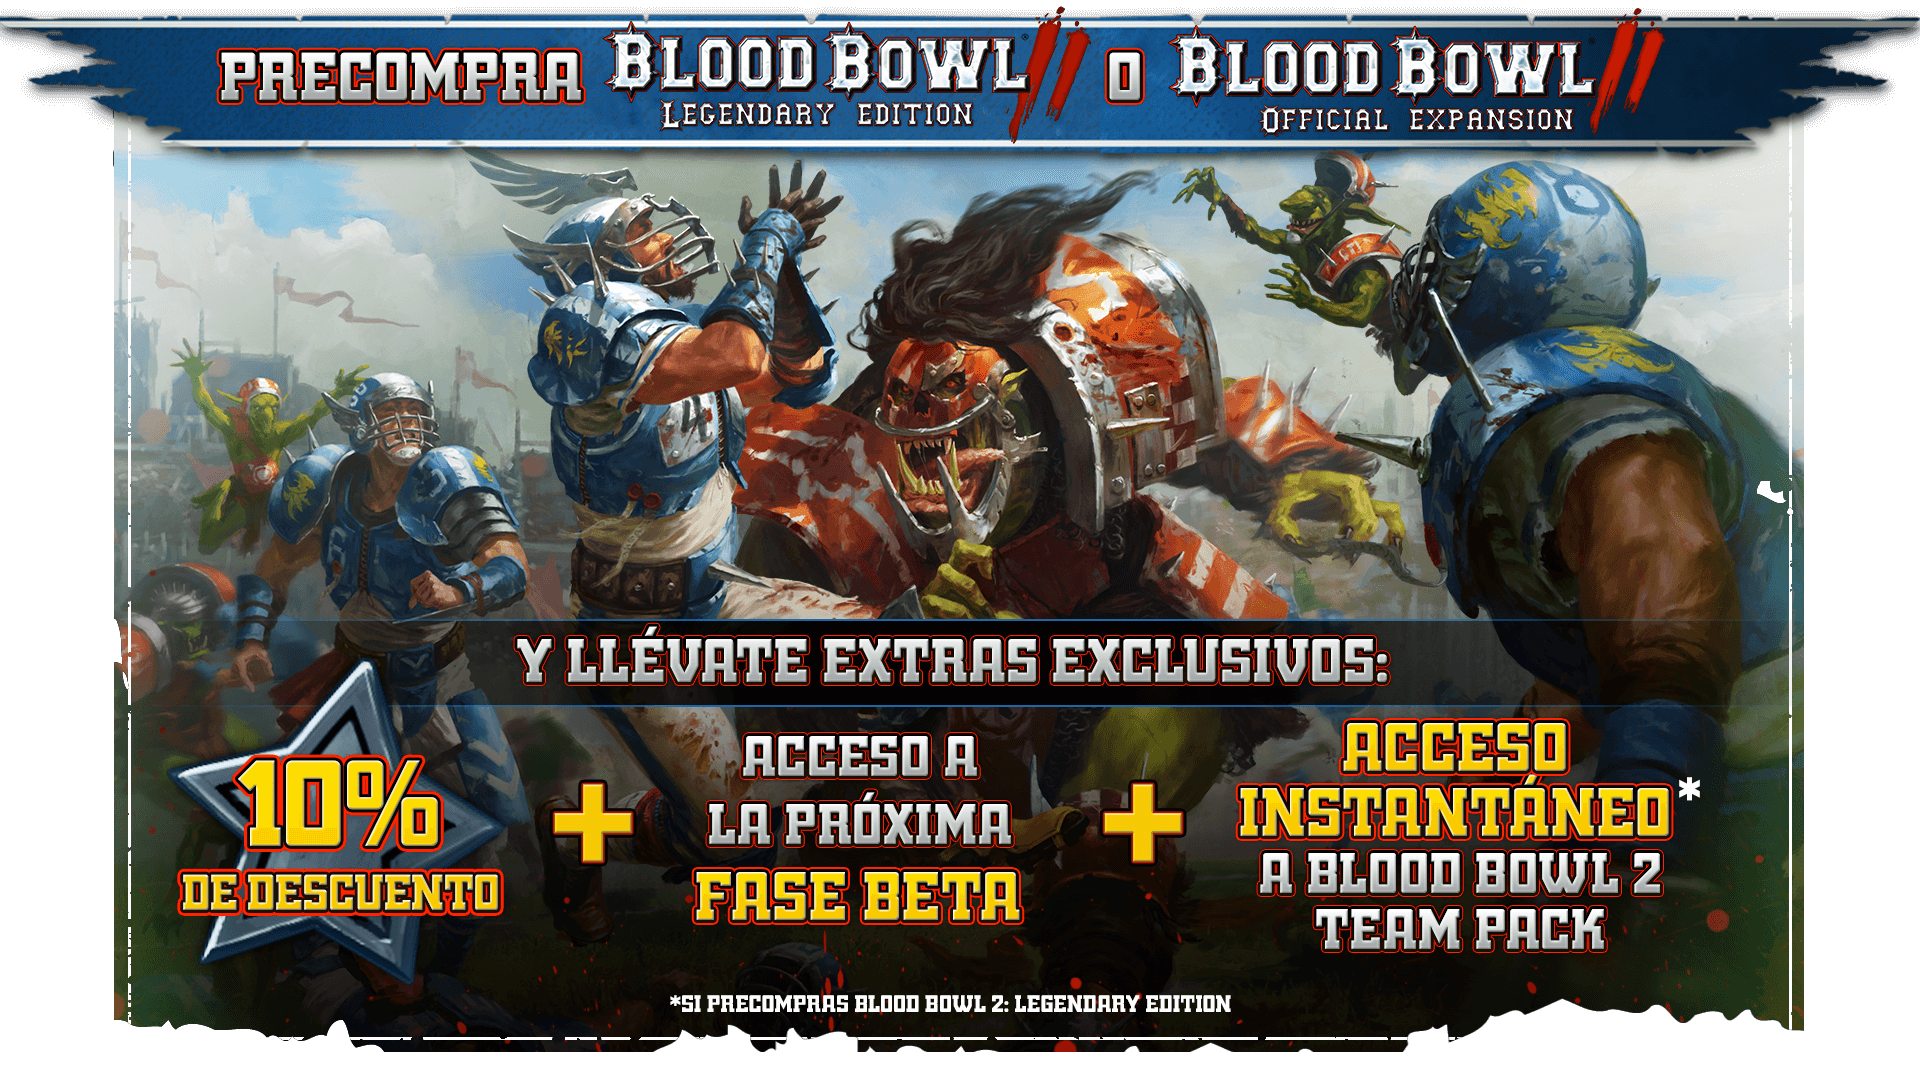 https://i0.wp.com/cdn.focus-home.com/admin/games/blood_bowl_2/edition/preorder/desktop/es.png